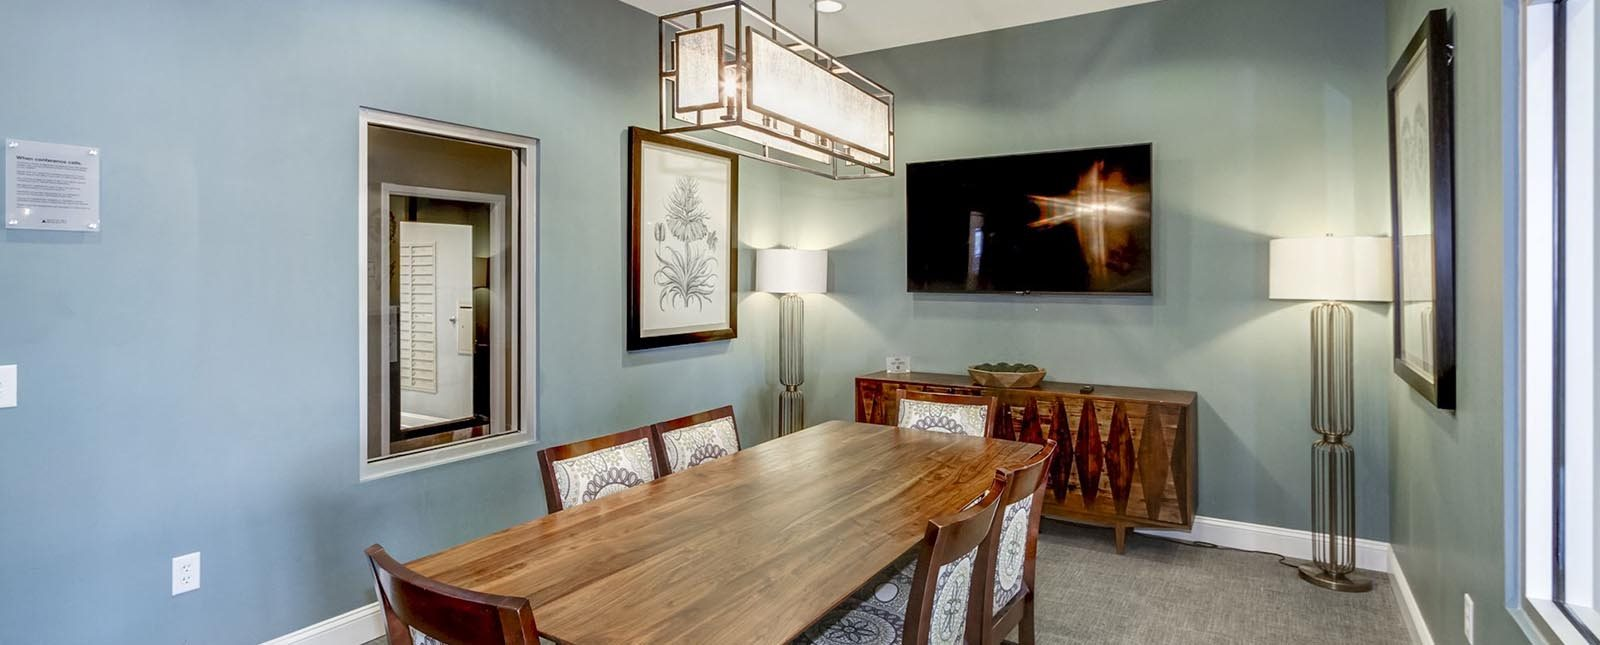 Conference Room of The Haven luxury apartments in Malvern, PA